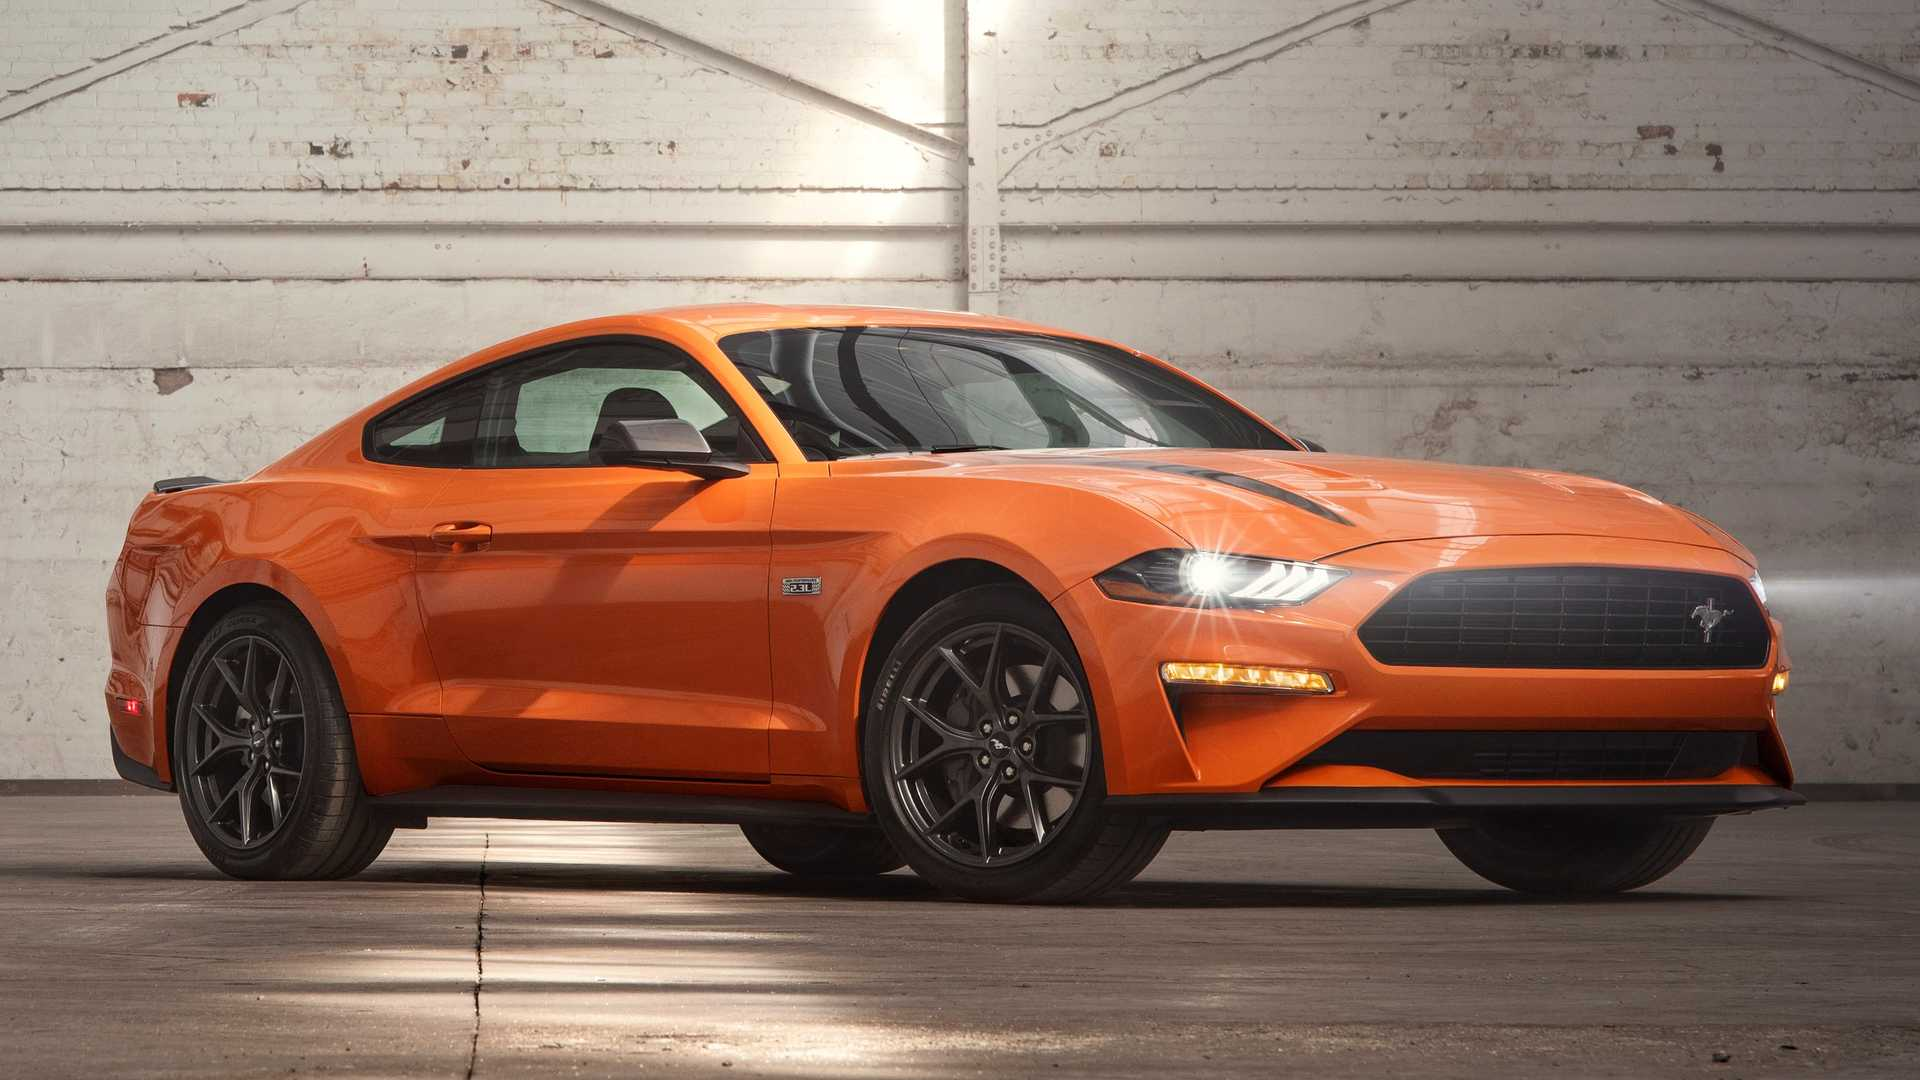 59 New 2020 Ford Mustang Images